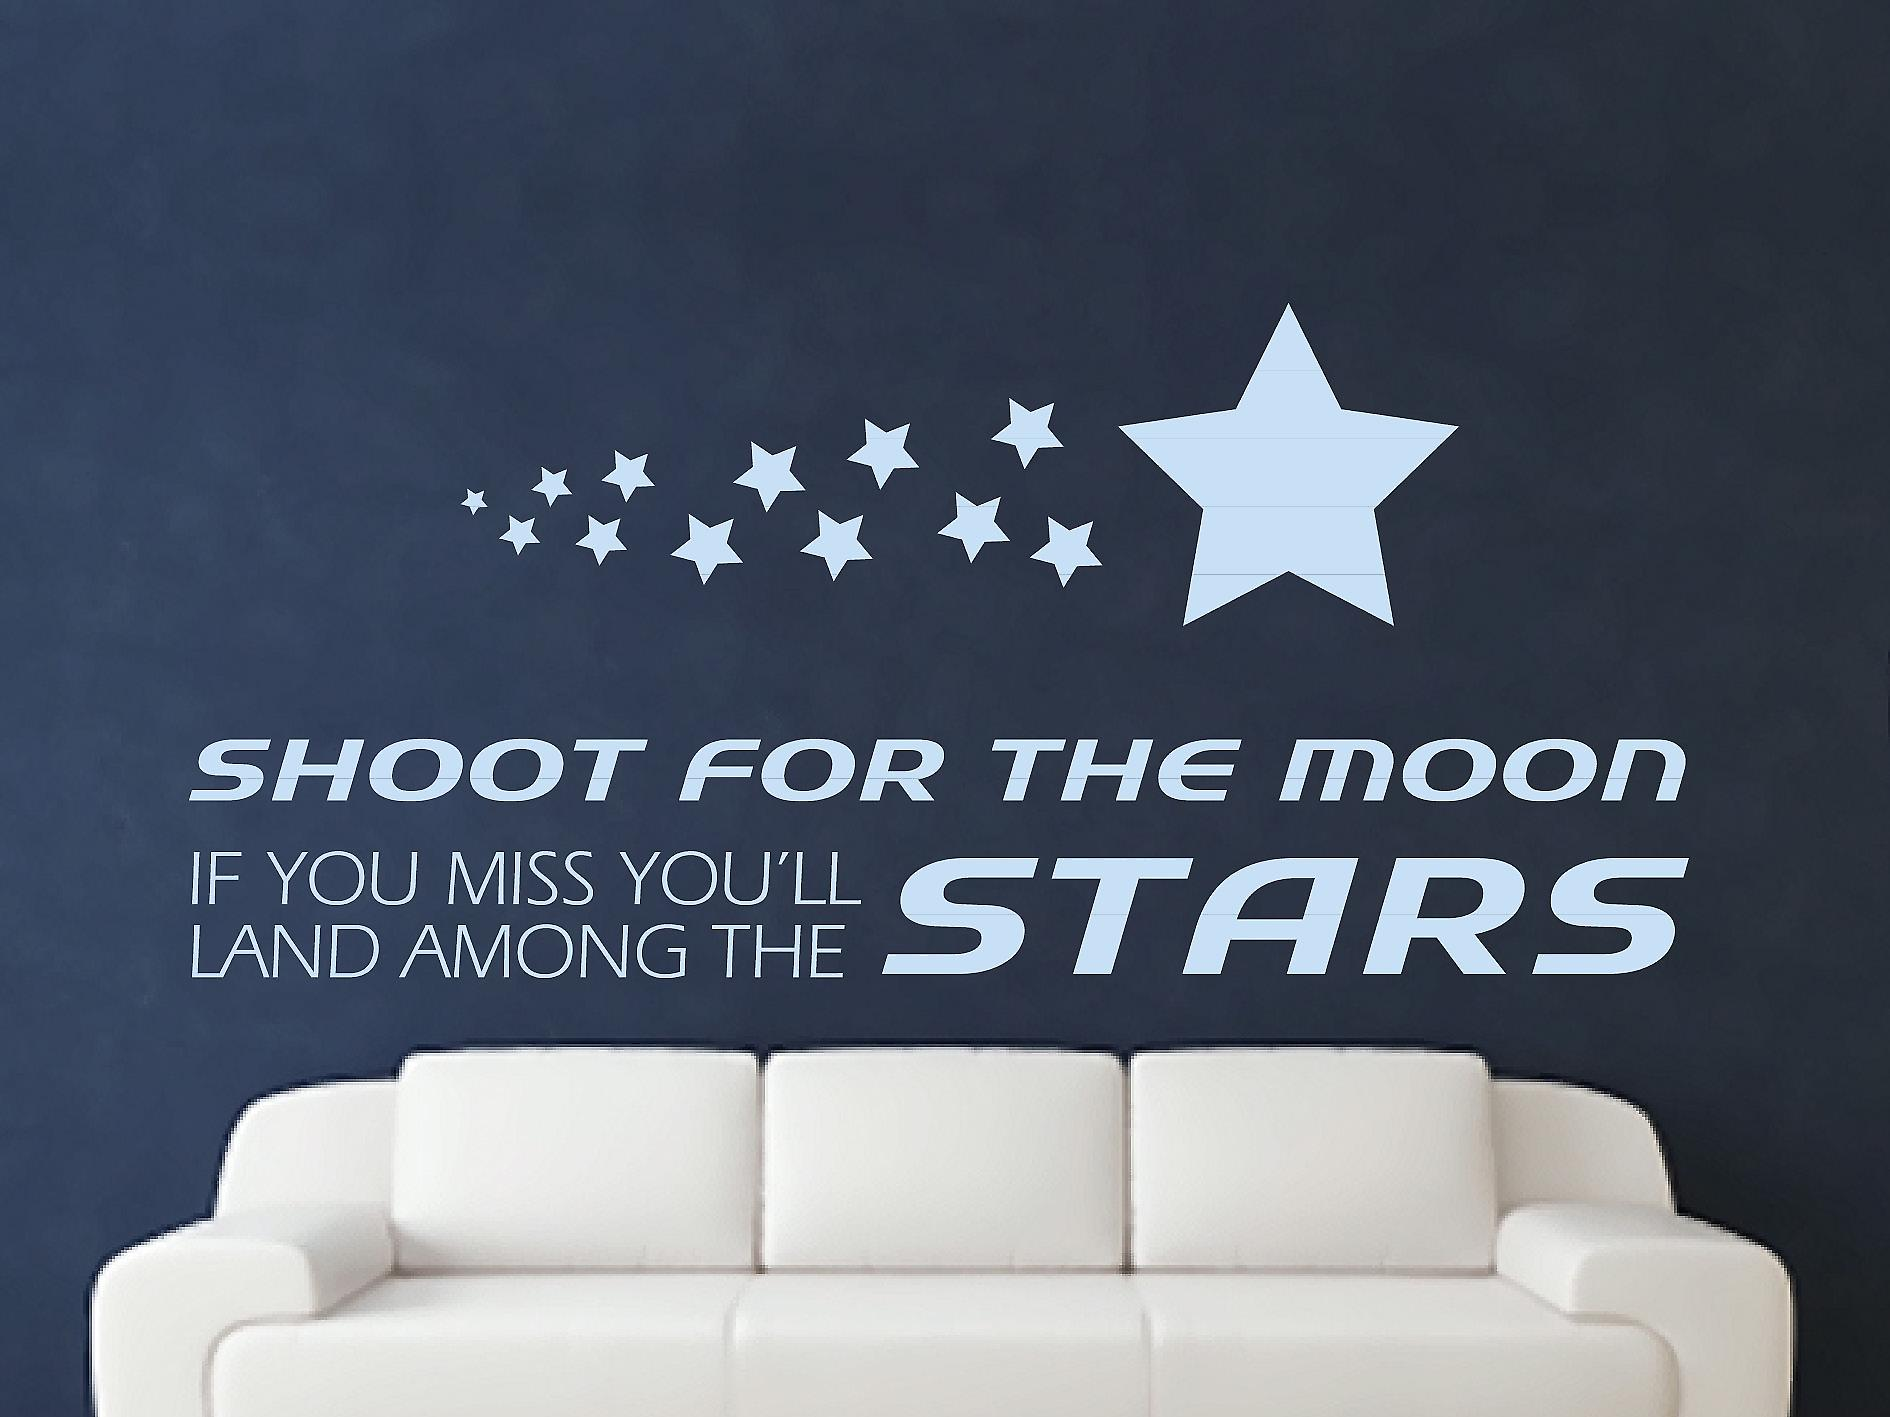 Shoot For The Moon Wall Art Sticker - Pastel Blue